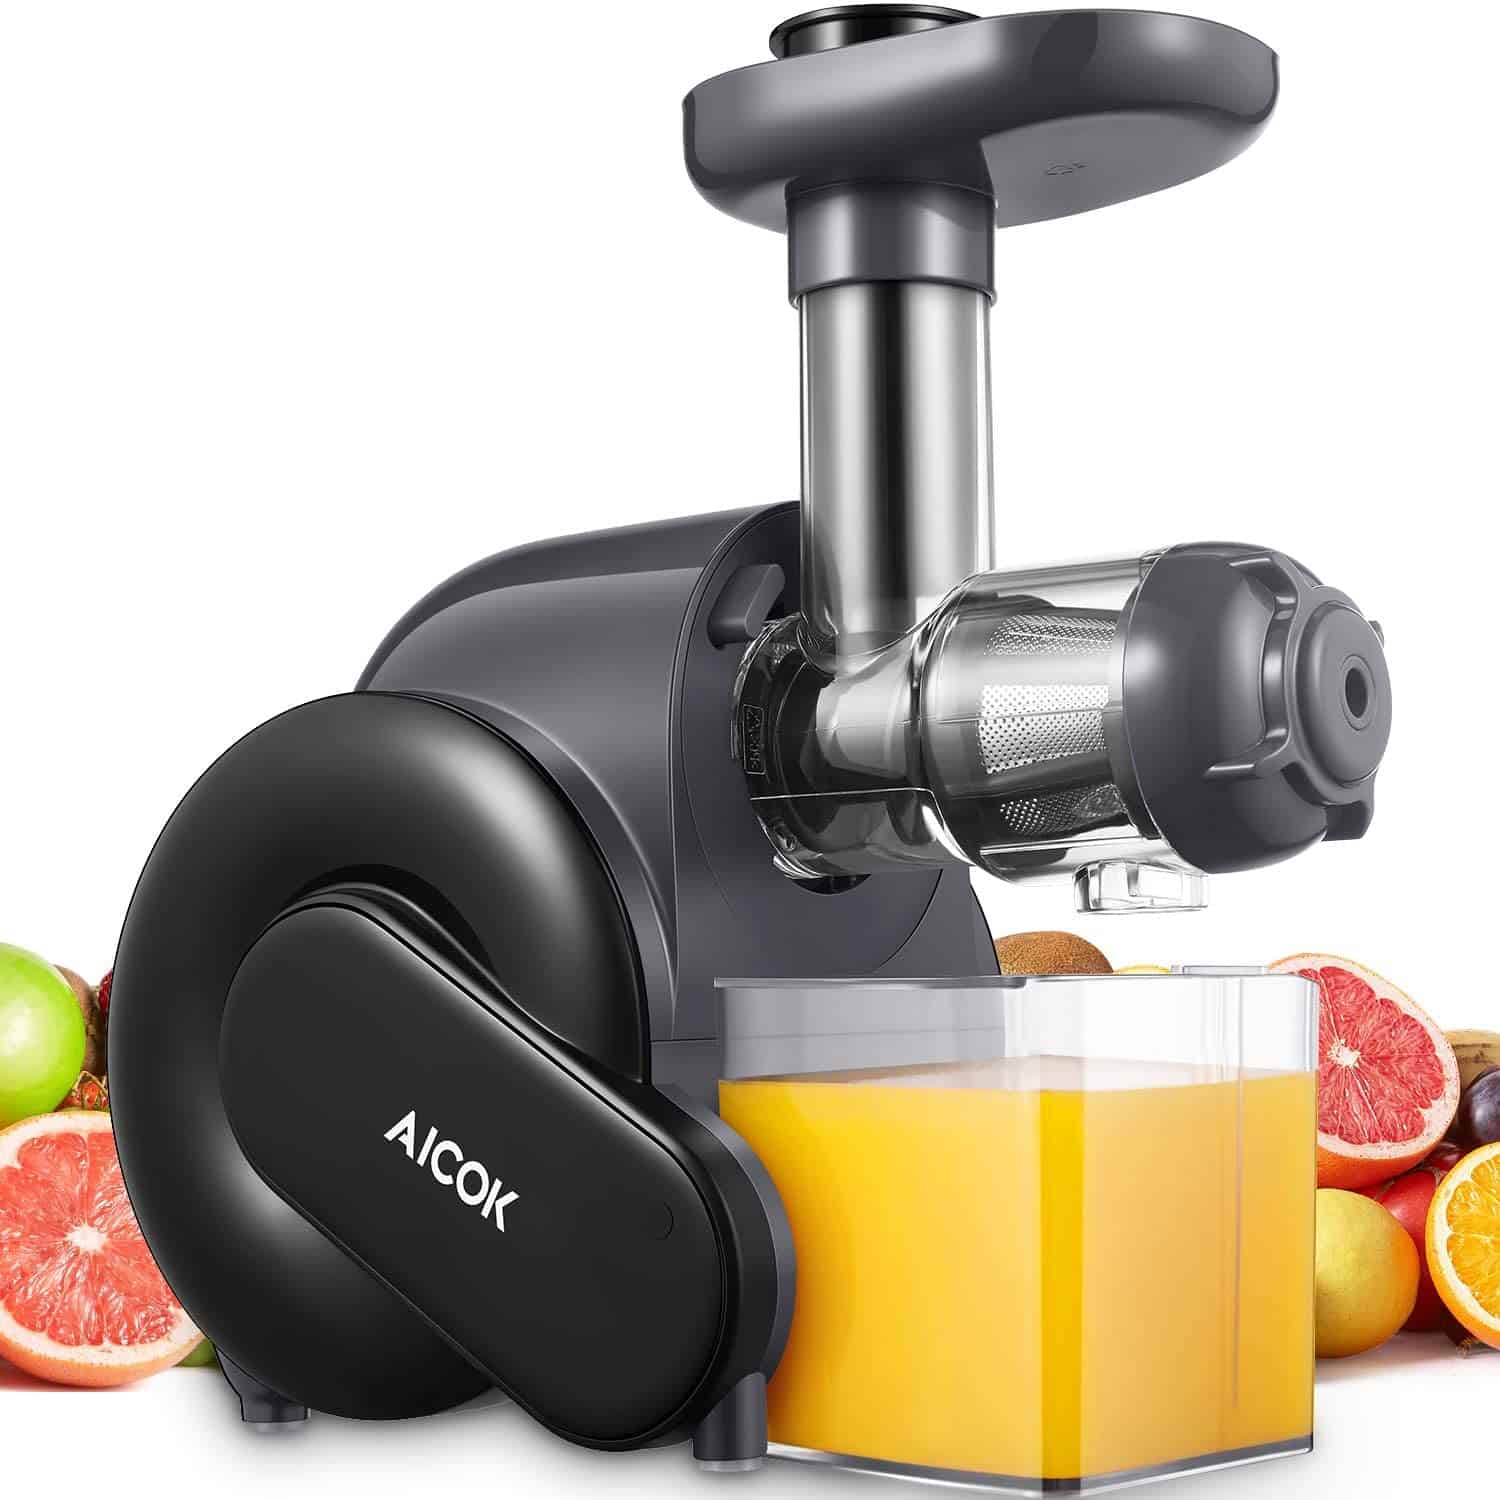 Aicok Slow Masticating Juicer with Quiet Motor